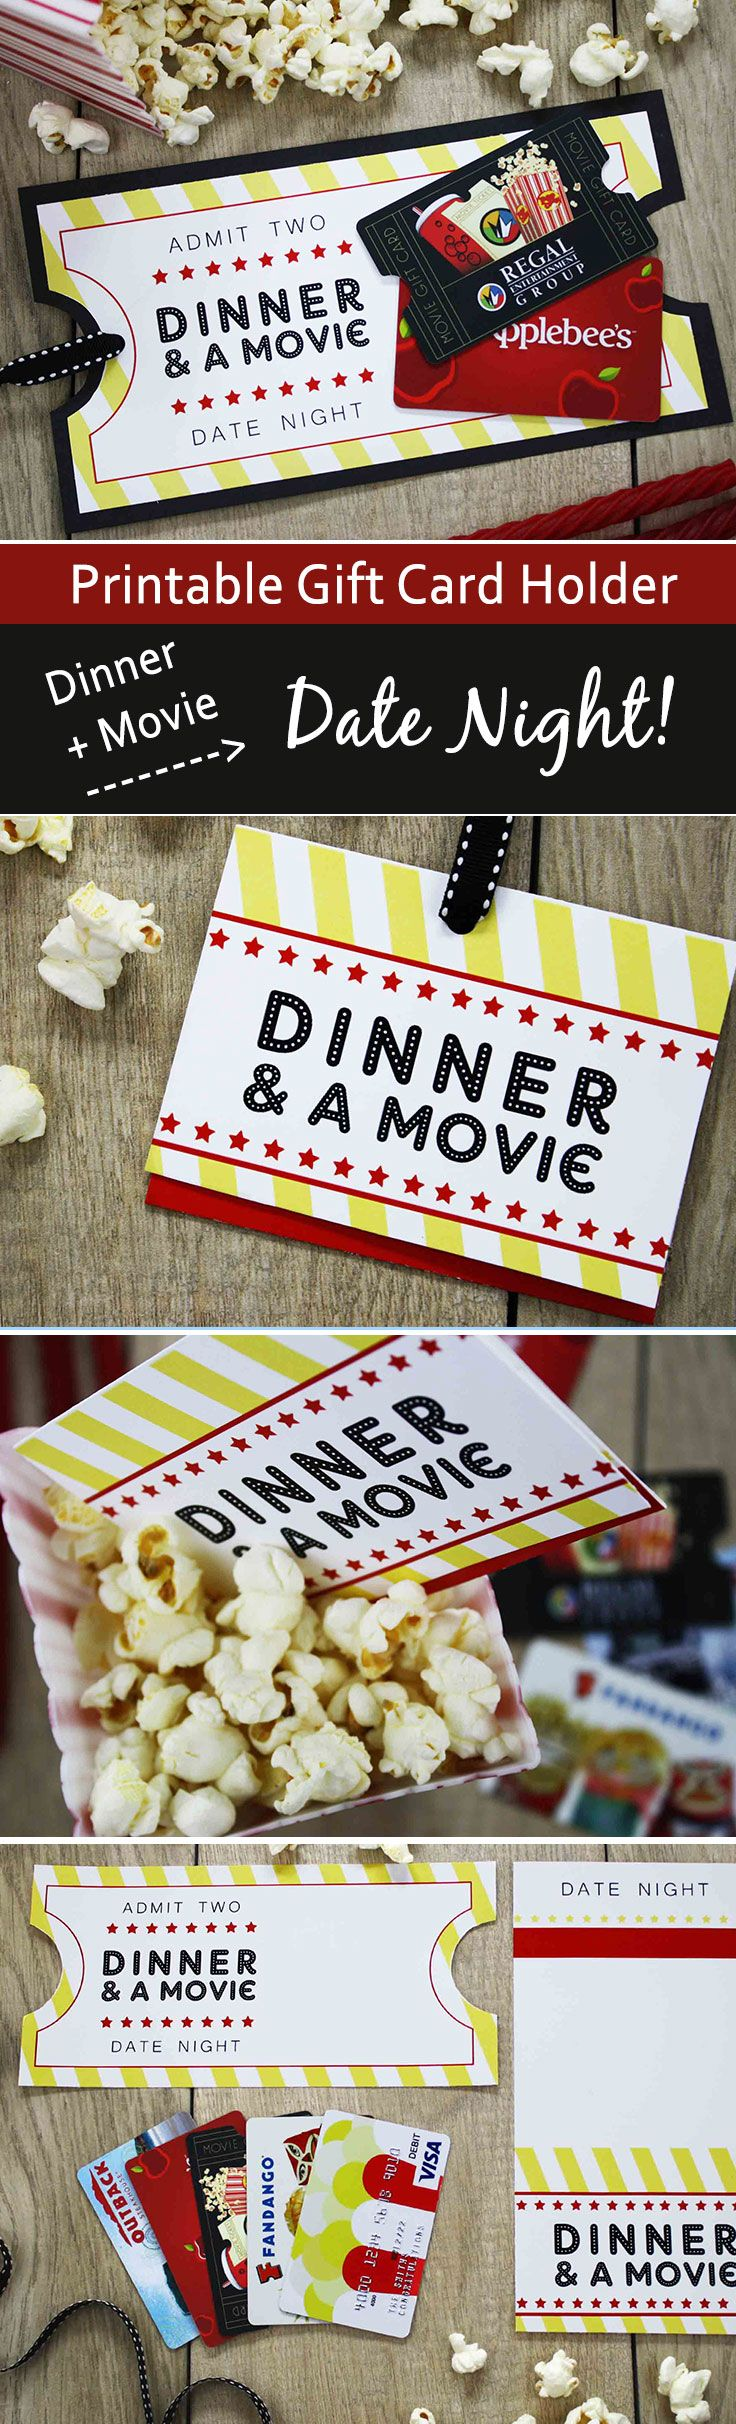 This wedding gift card holder is perfect for holding gift cards to ...